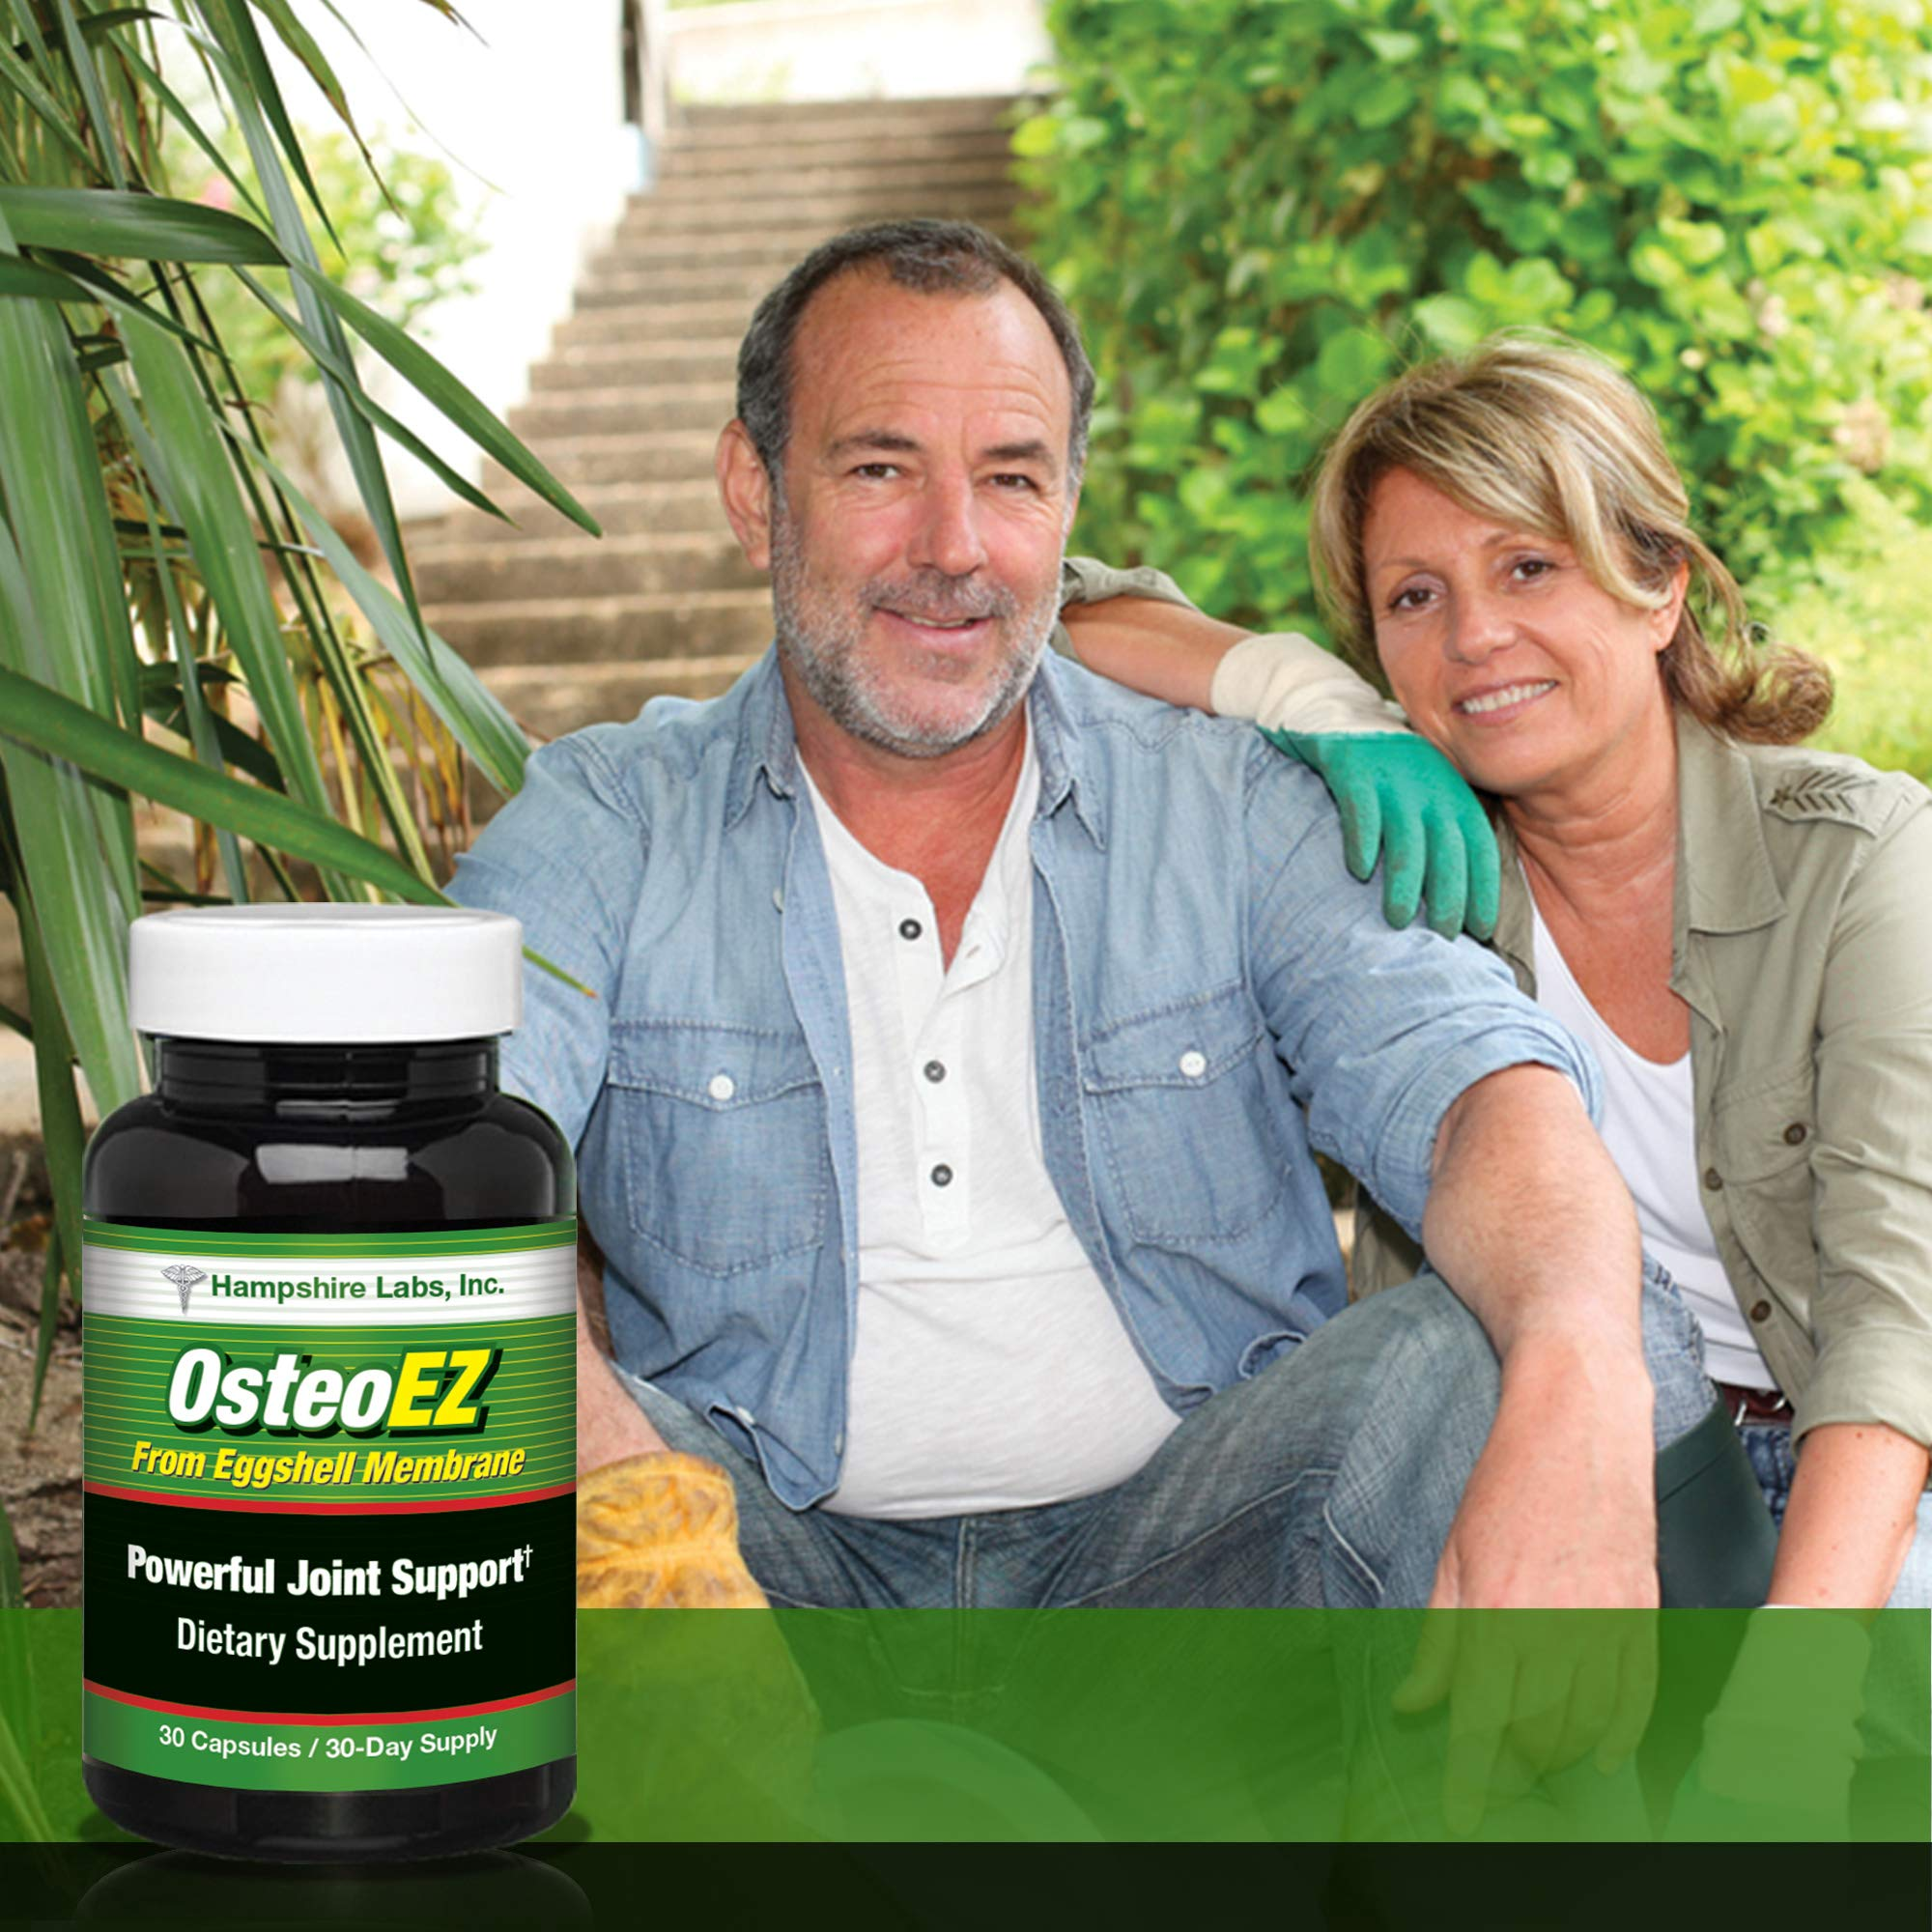 OsteoEZ All-Natural Dietary Supplement Joint Formula Targets Joint discomfort  Supports Your Joint tissues to Help Promote Flexibility and Mobility and Provide Cushioning. 180 Day Supply.